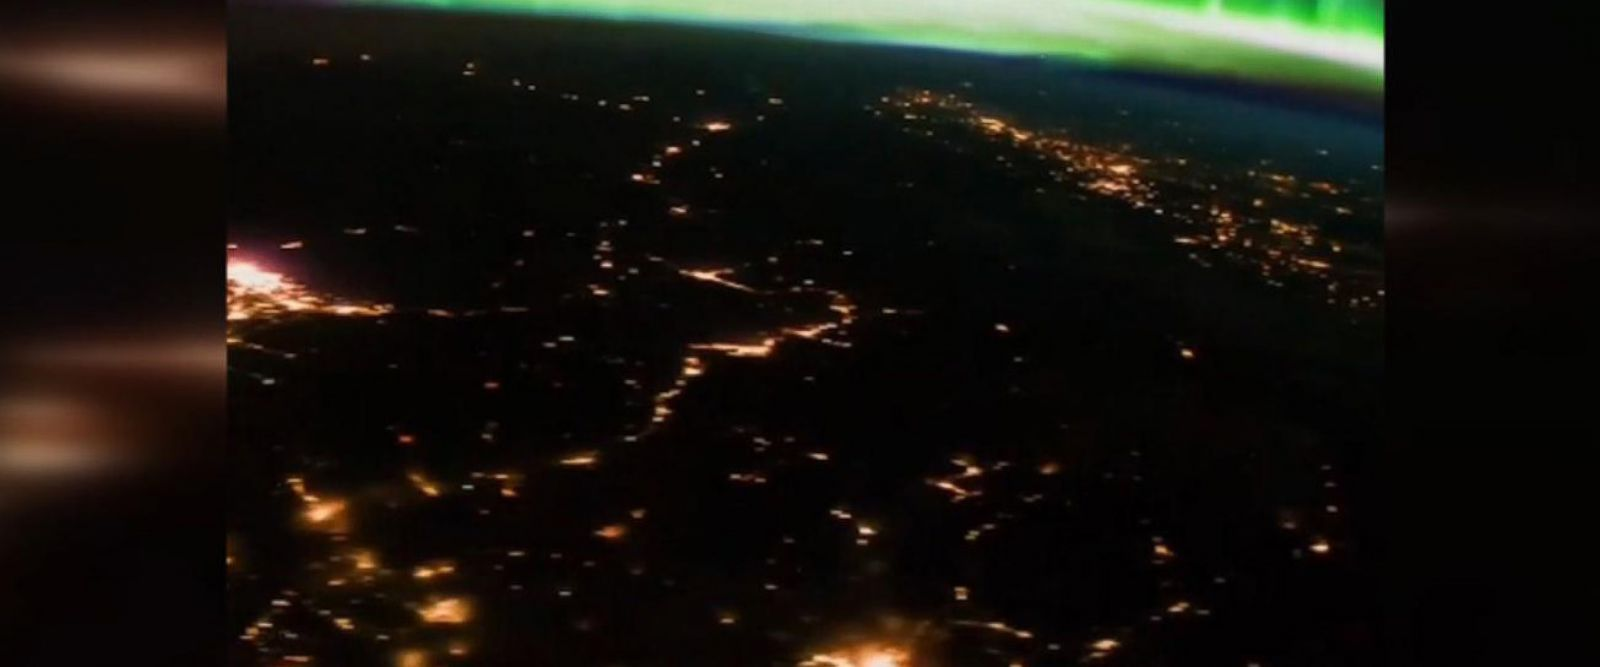 VIDEO: Aurora Borealis as seen from the ISS